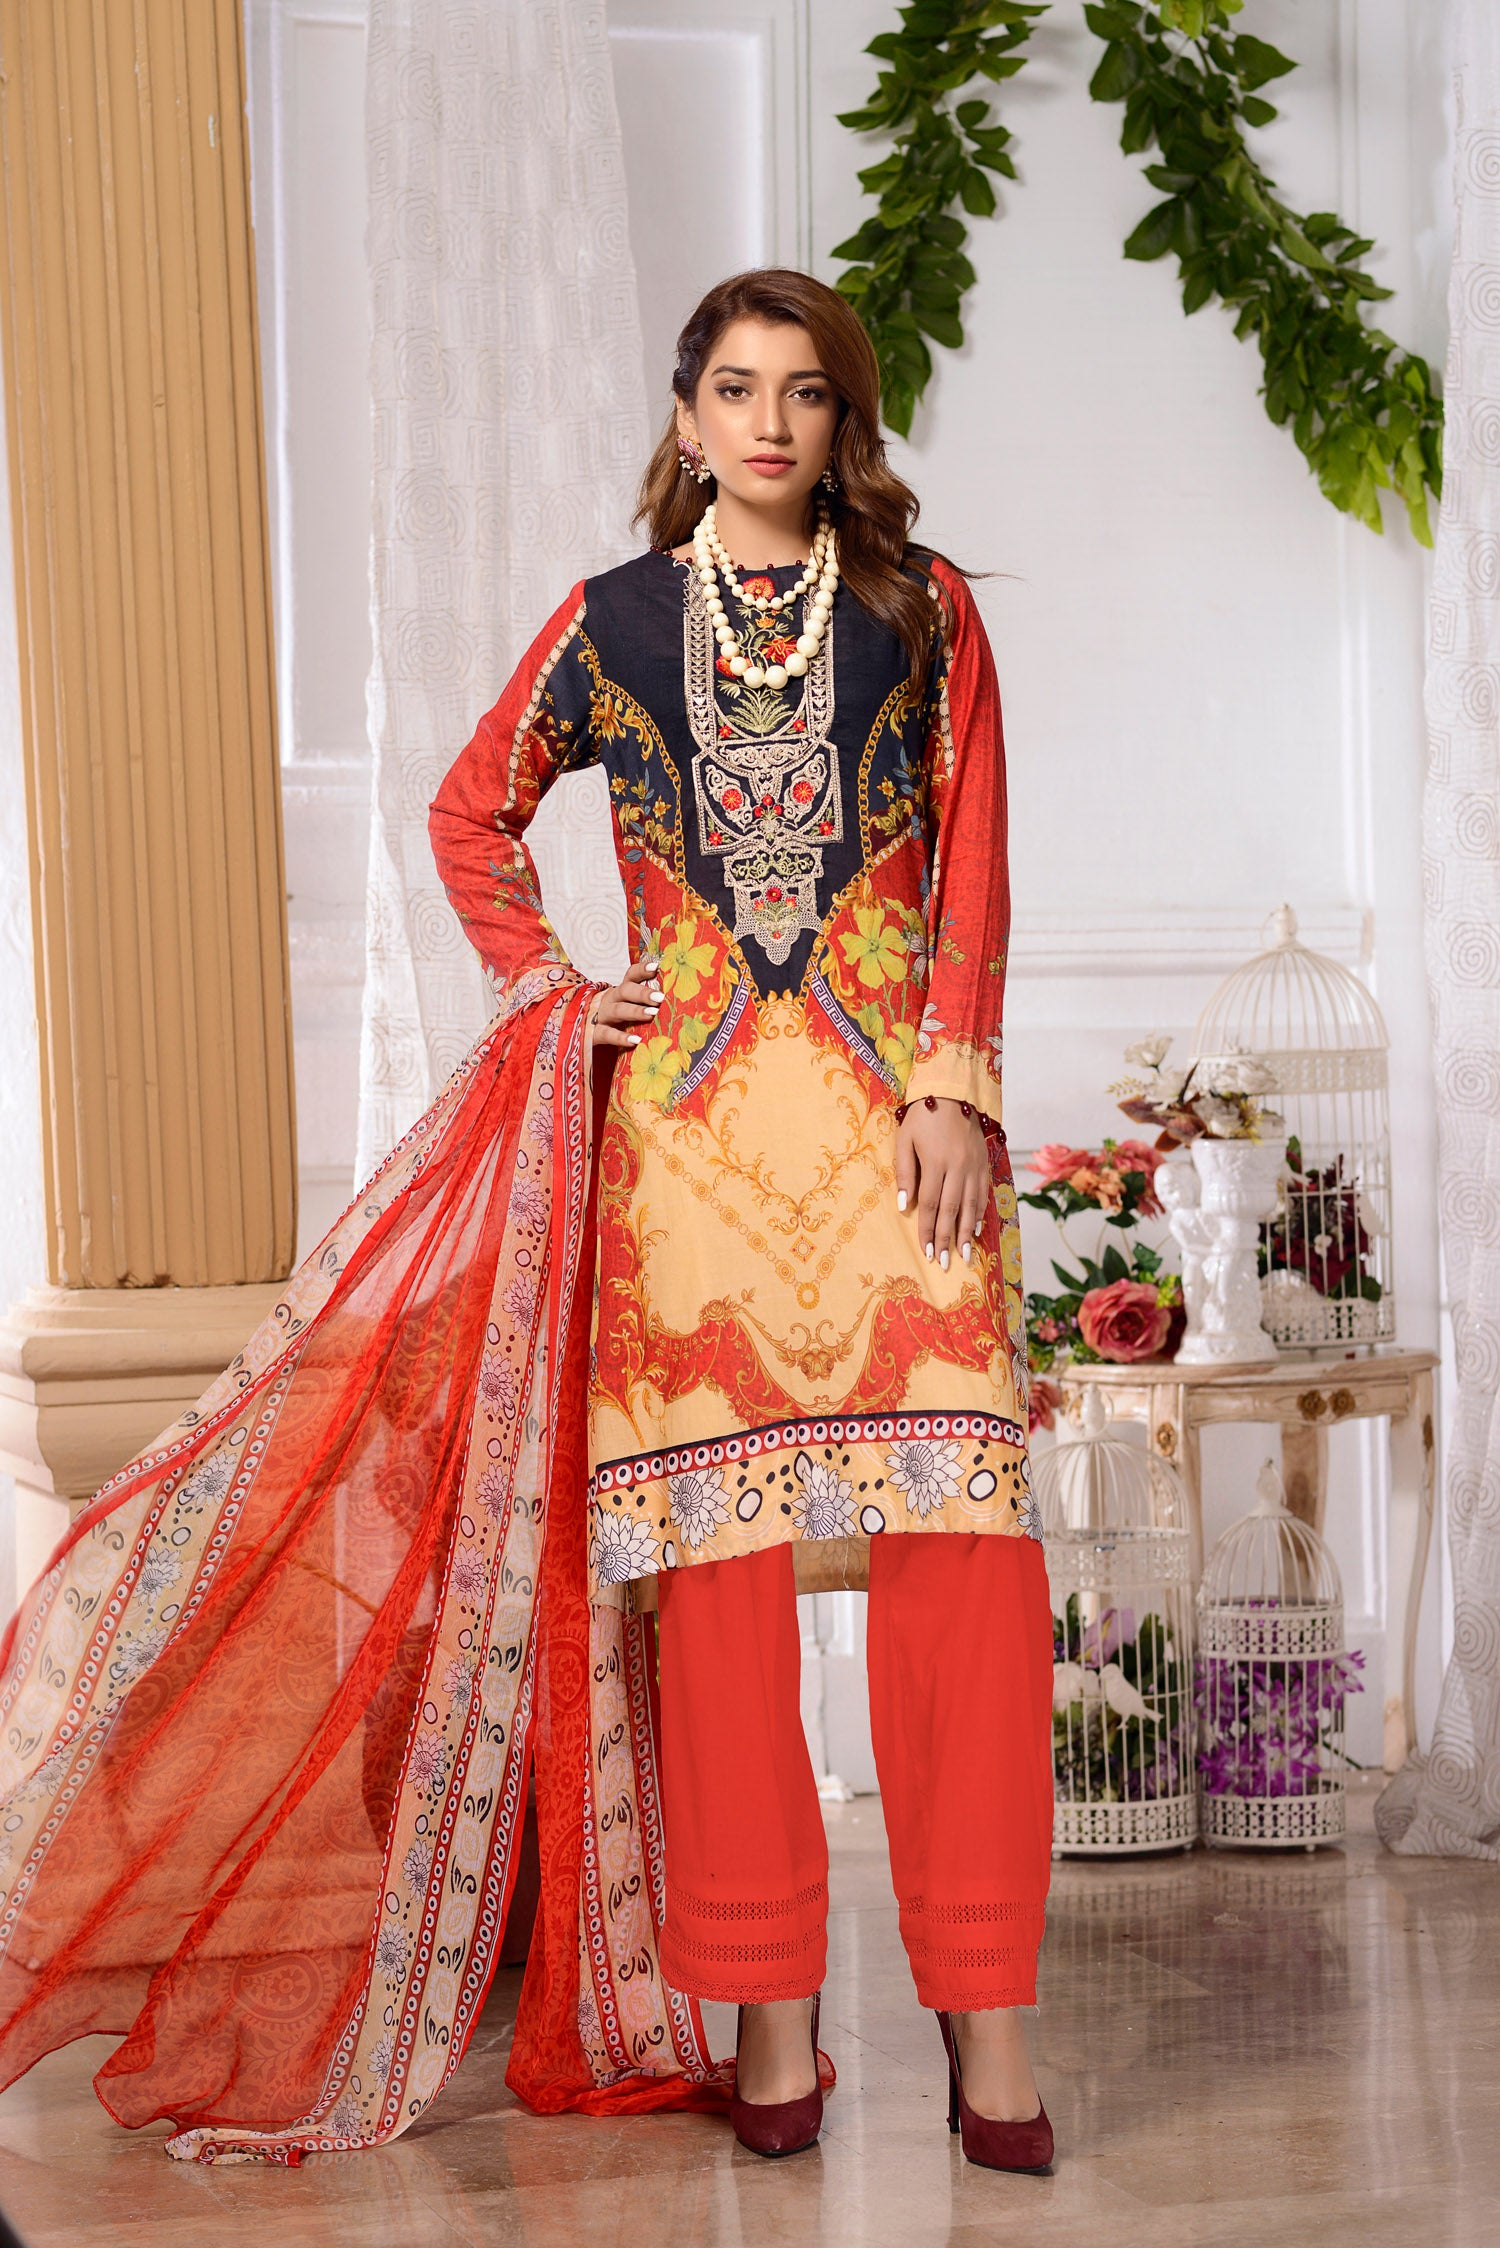 Zinnia  - DIGITAL PRINTED & EMBROIDERED LAWN 3PC